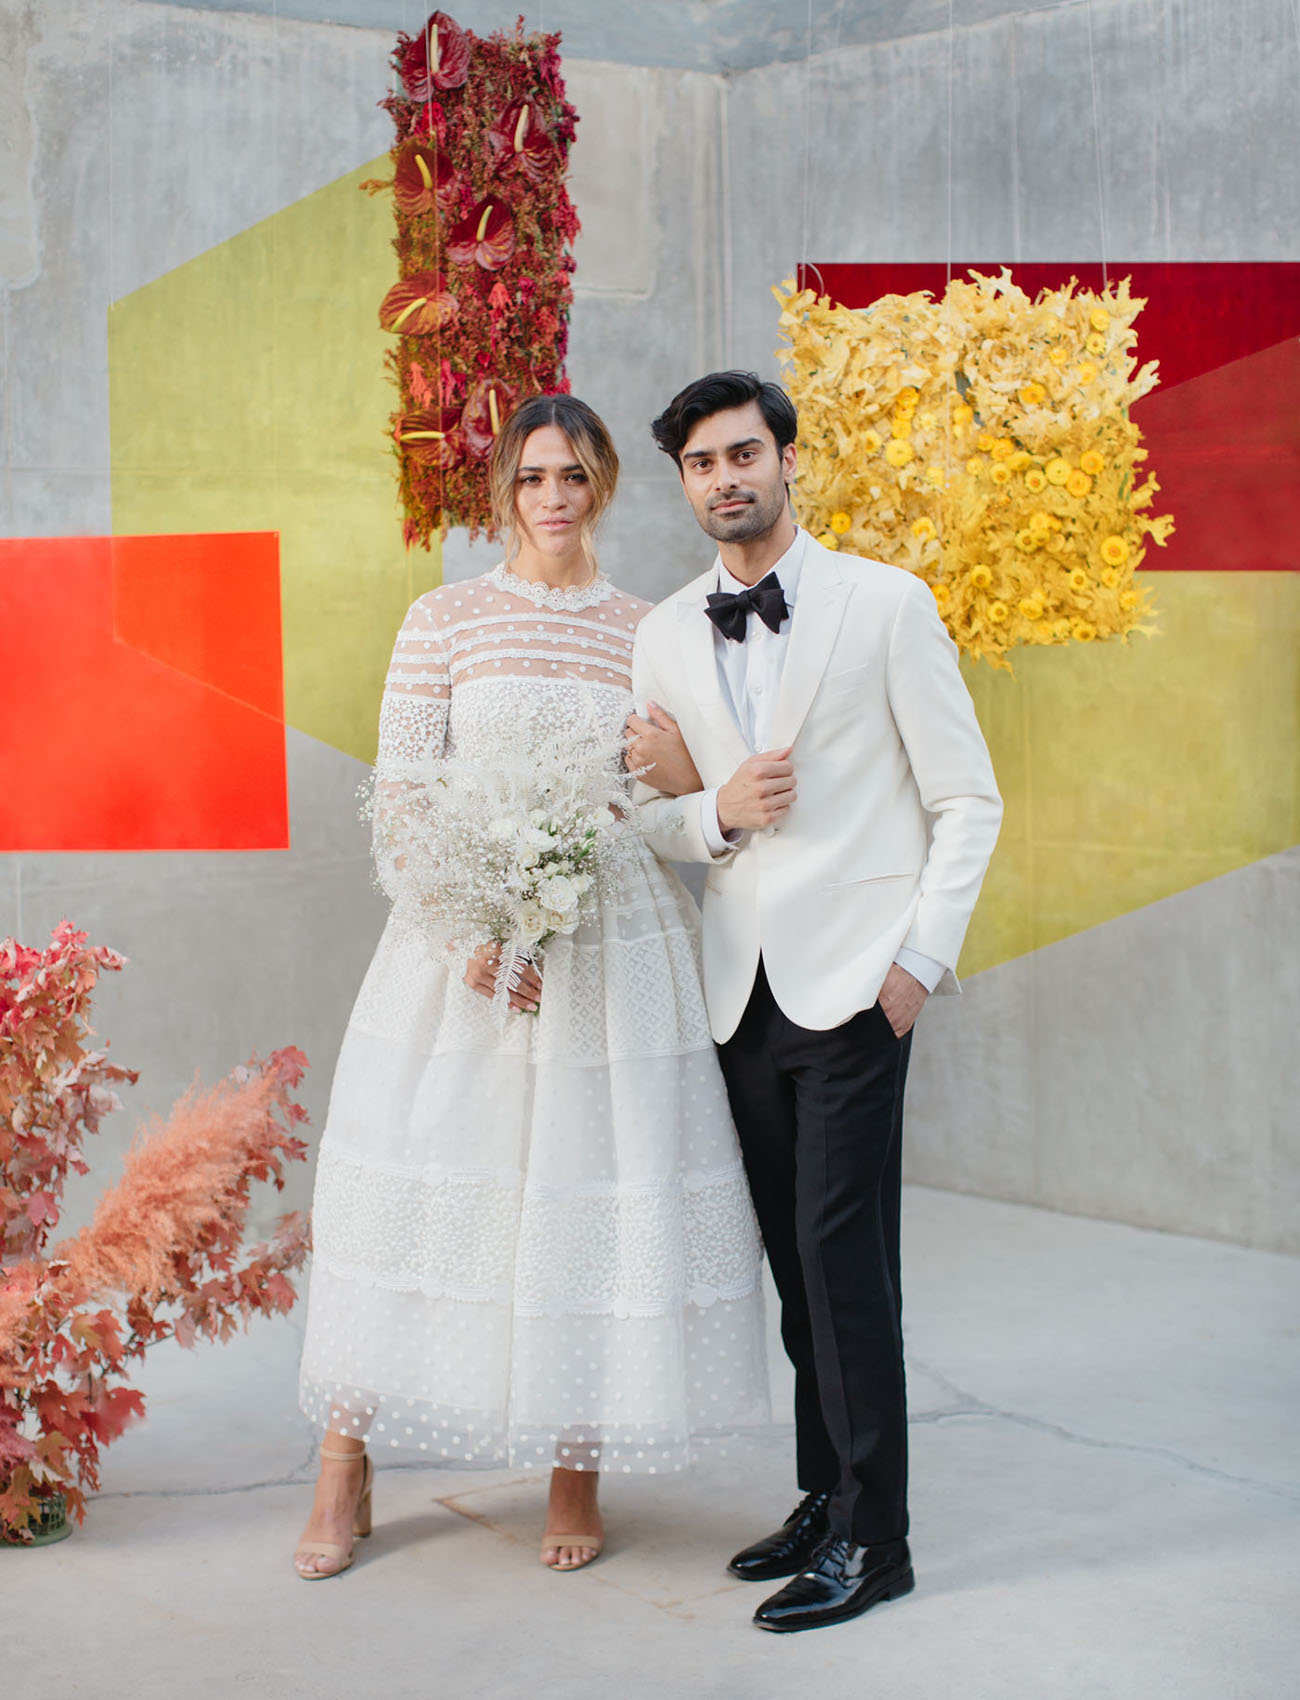 a color block wedding backdrop with burgundy, yellow and red figures and floral installations